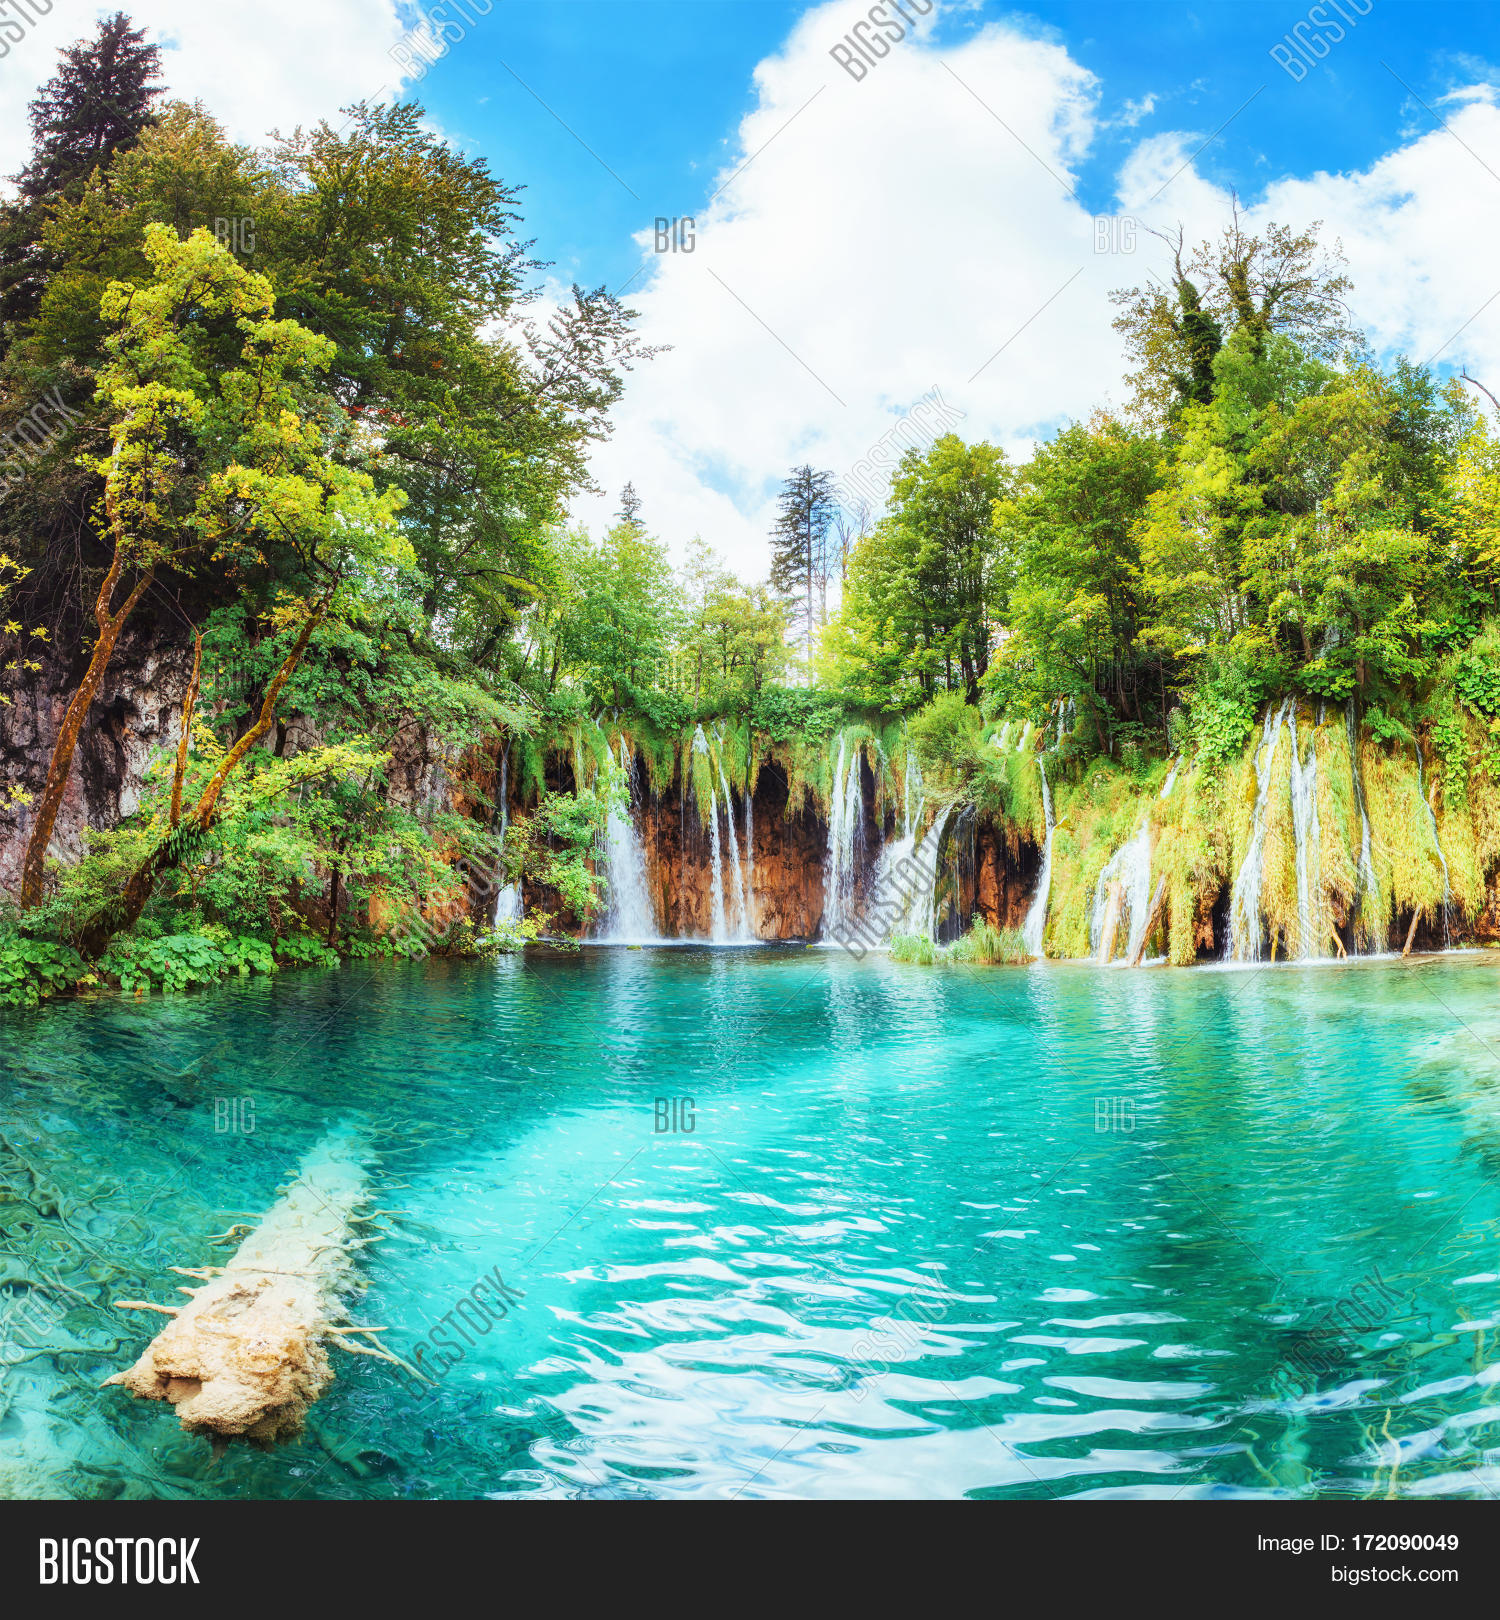 Scenic Views Turquoise Image & Photo (Free Trial)   Bigstock